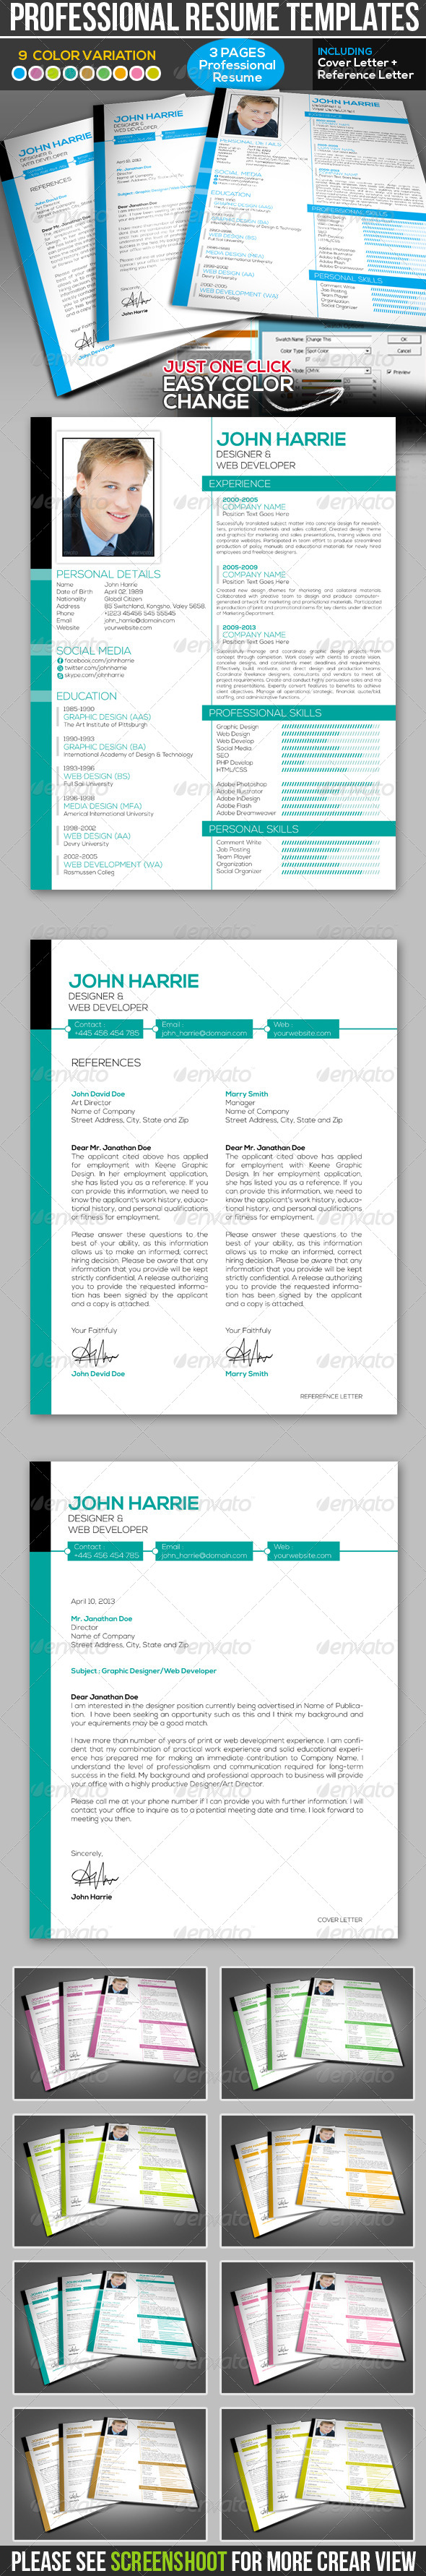 GraphicRiver Professional Resume Templates 4424915